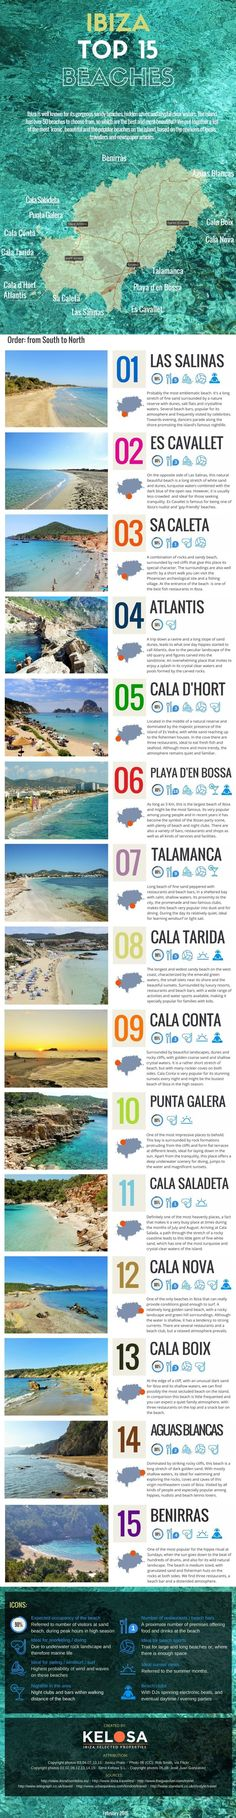 Ibiza's Top 15 Beaches – Travel Menorca, Ibiza Formentera, Ibiza Travel, Spain Travel, Ibiza Trip, Europe Destinations, Holiday Destinations, Places To Travel, Places To Visit